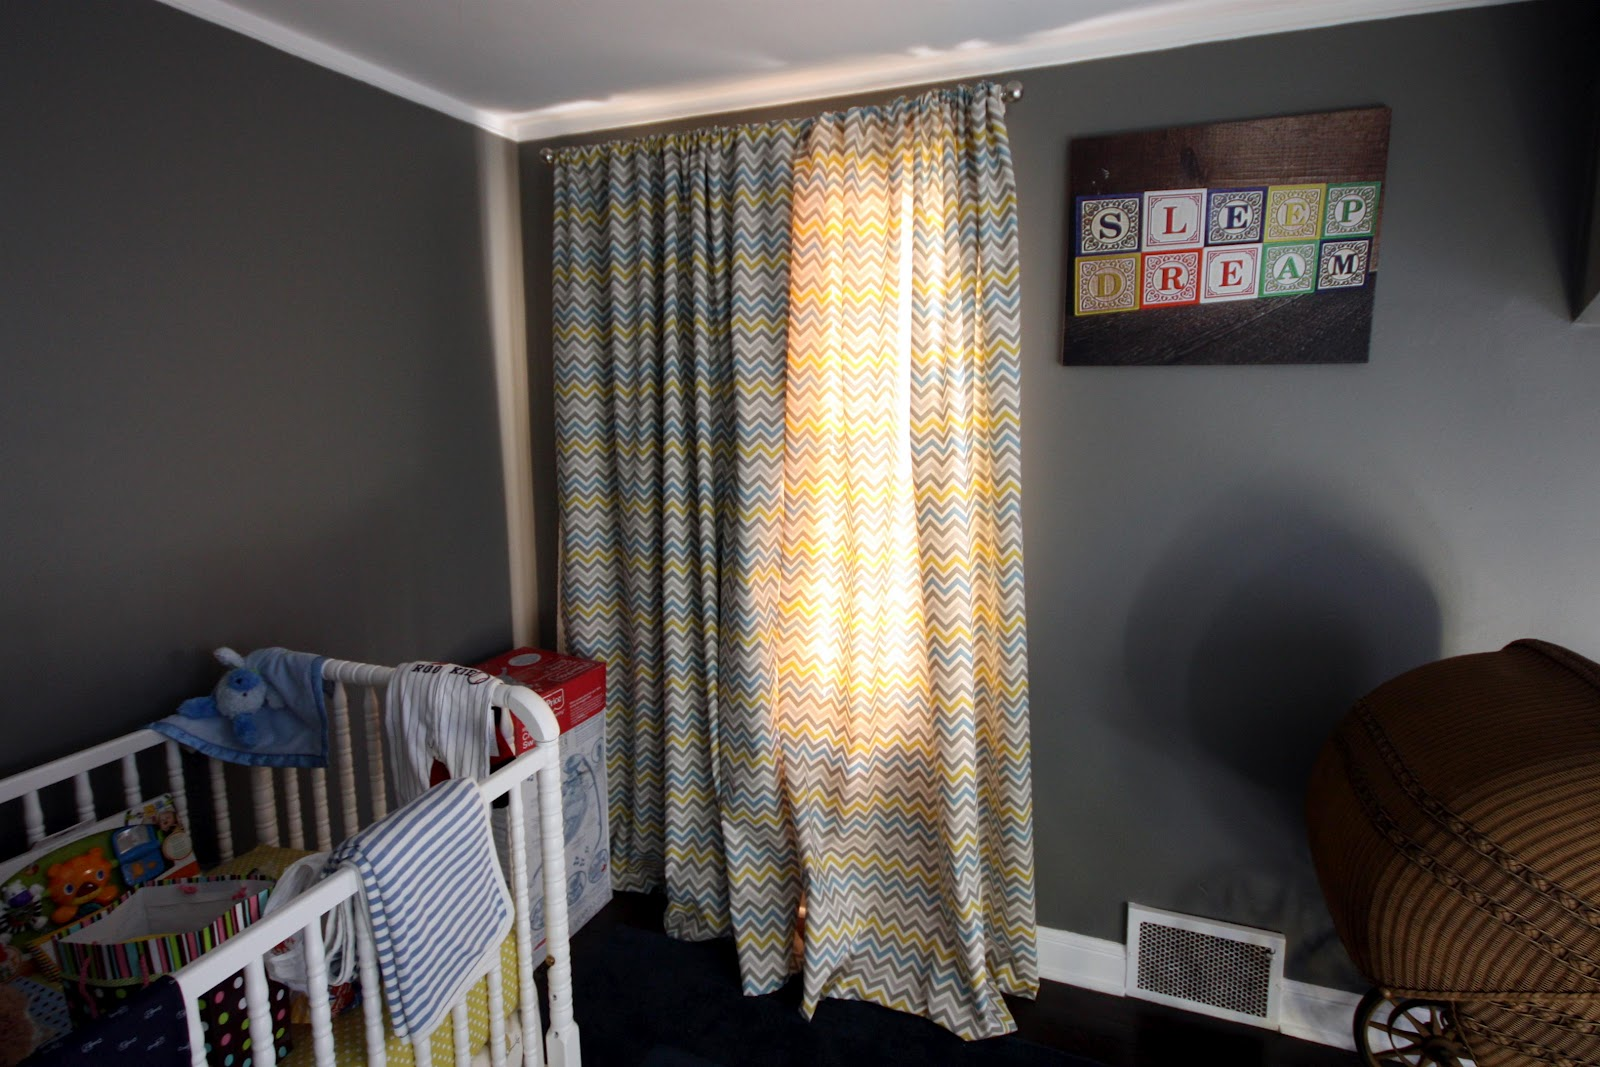 The Blinds Are Closed, And Clearly There Is Just Too Much Light Coming  Through The Fabric Alone. The Two Windows On That Wall Are East Facing So  The Light ...